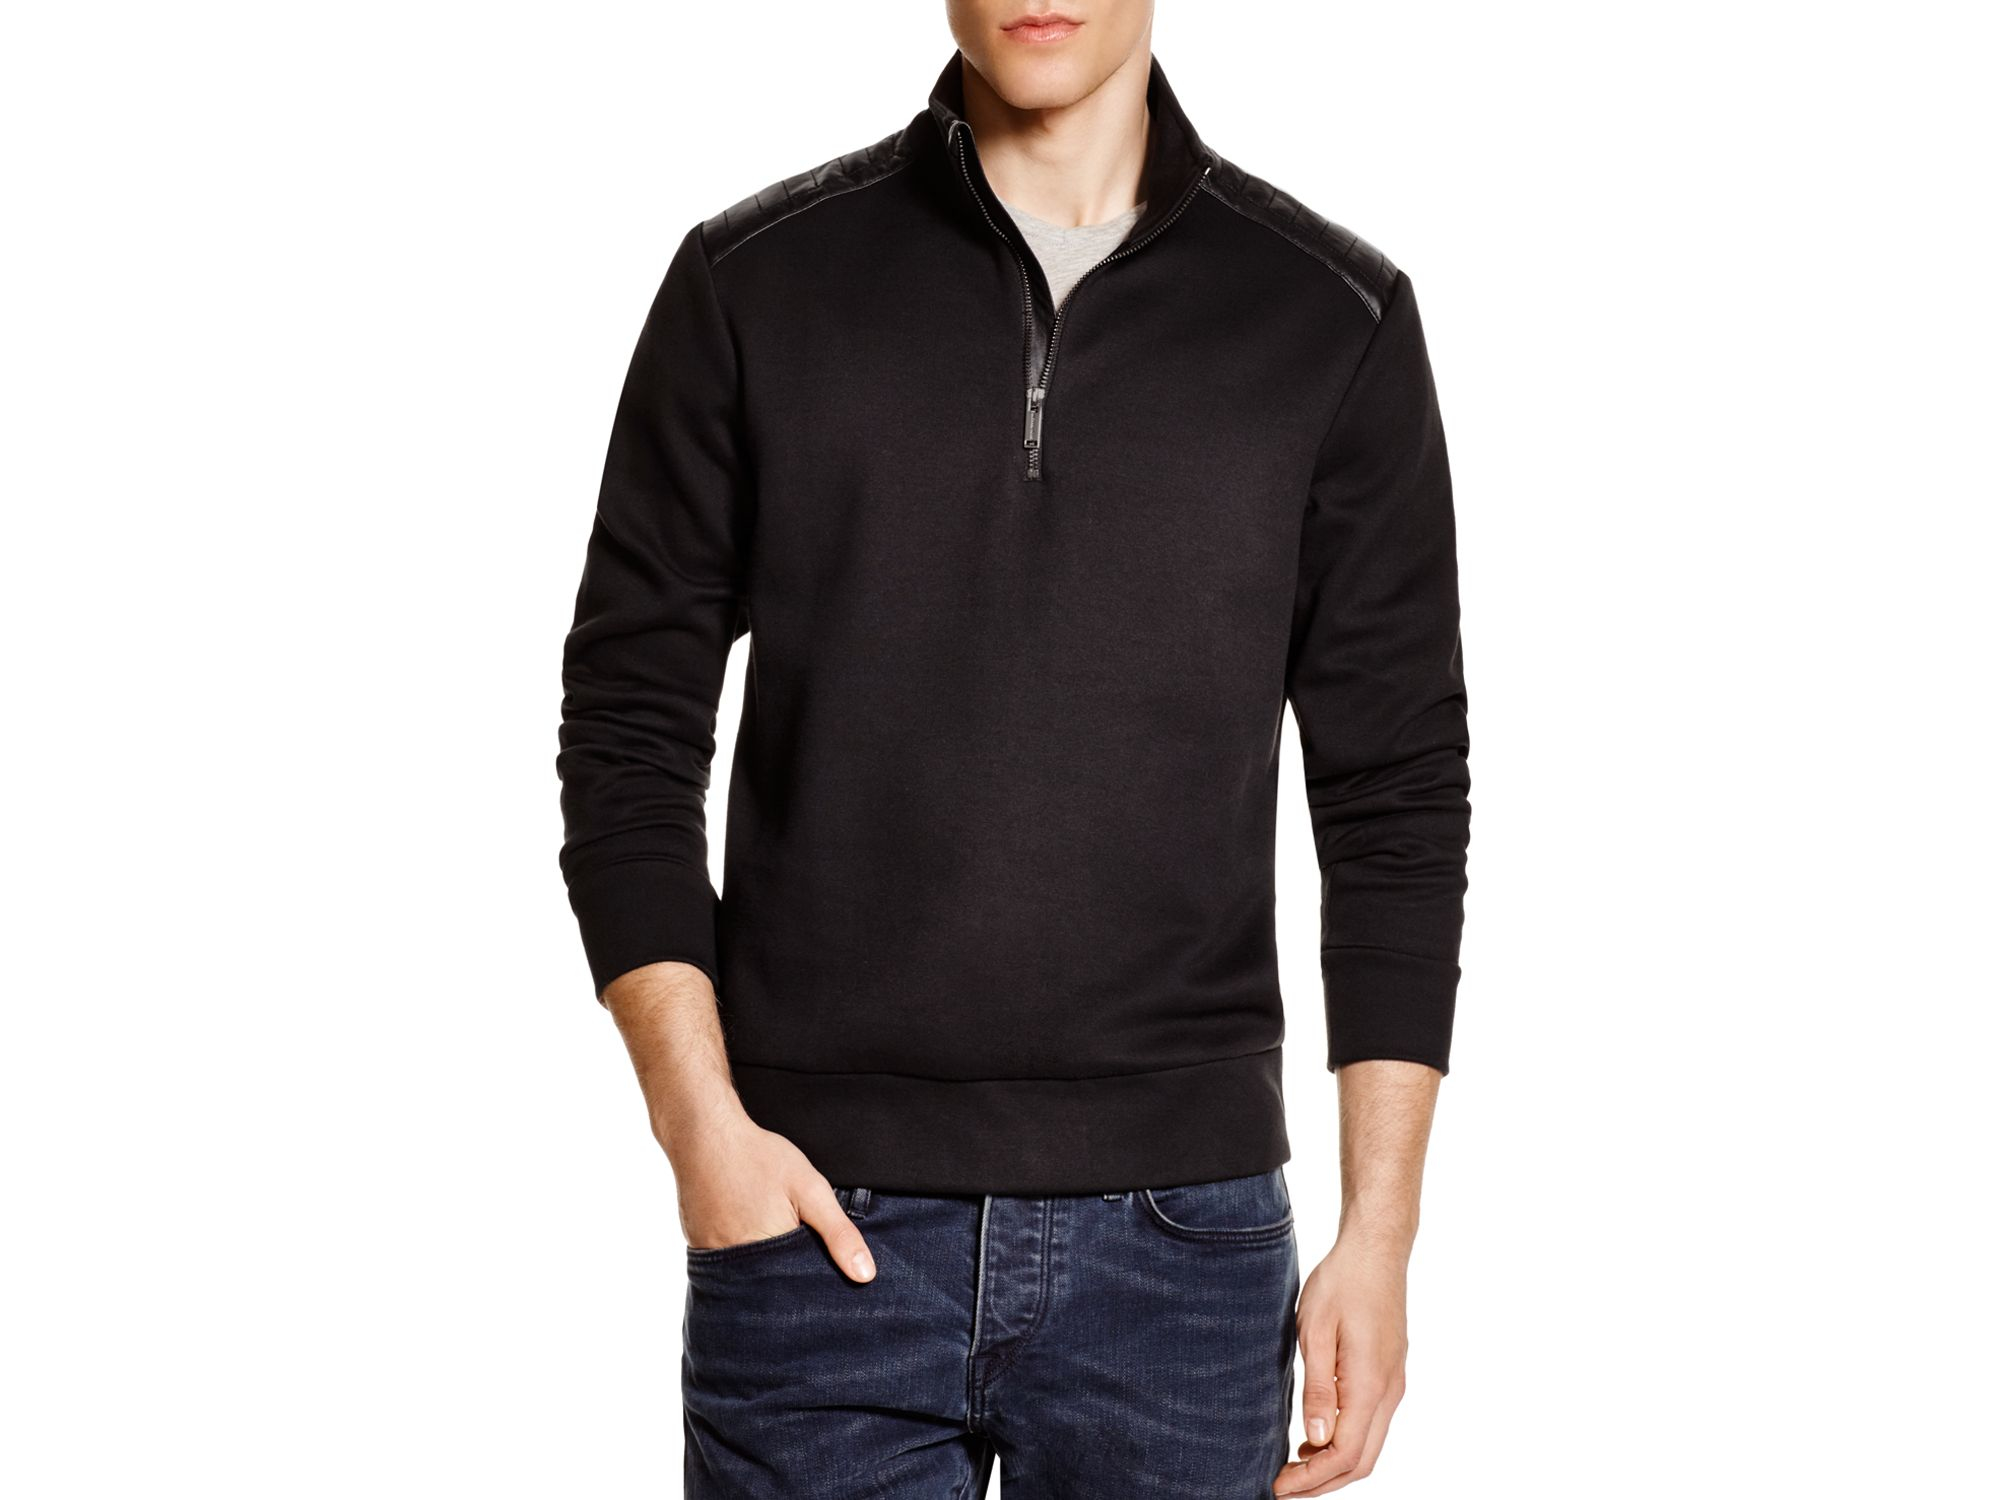 Michael kors Cotton Leather Trim Half Zip Sweater in Black for Men ...